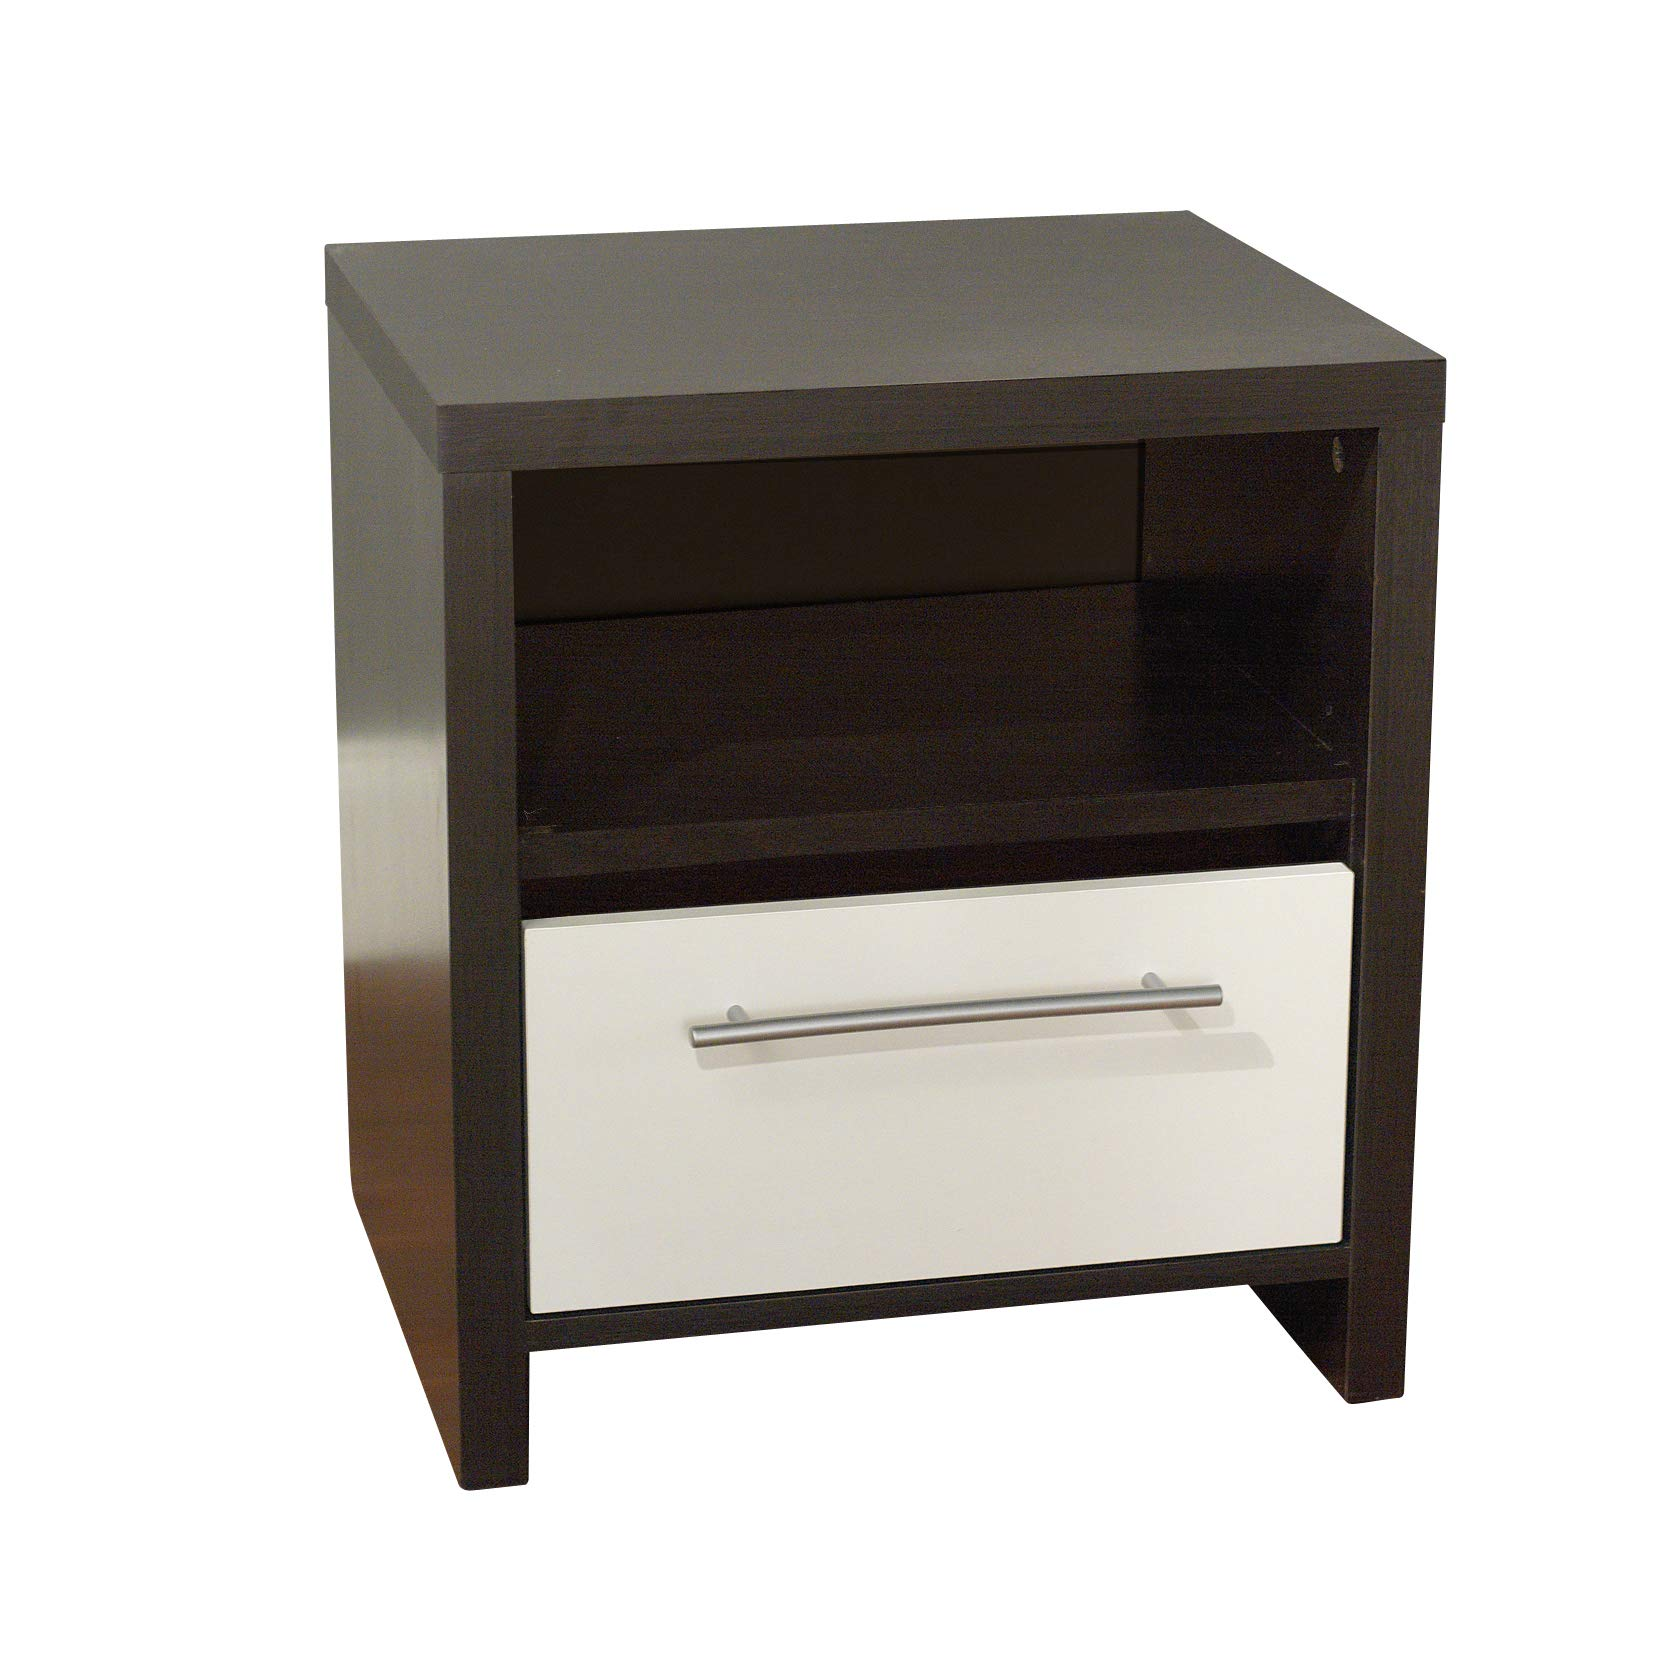 Target Marketing Systems Two-Toned Contemporary Nightstand with 1 Open Shelf and 1 Drawer, Espresso/White by Target Marketing Systems